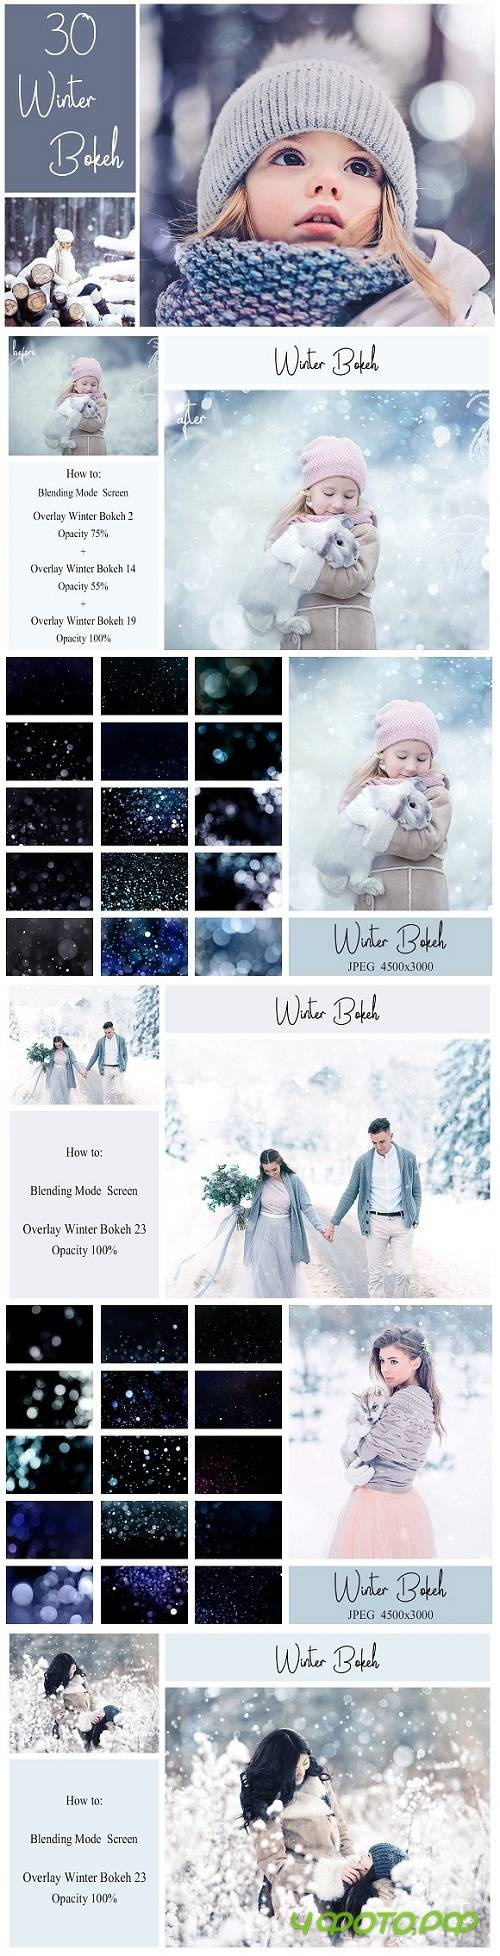 30 Winter Bokeh Overlays - 2052413